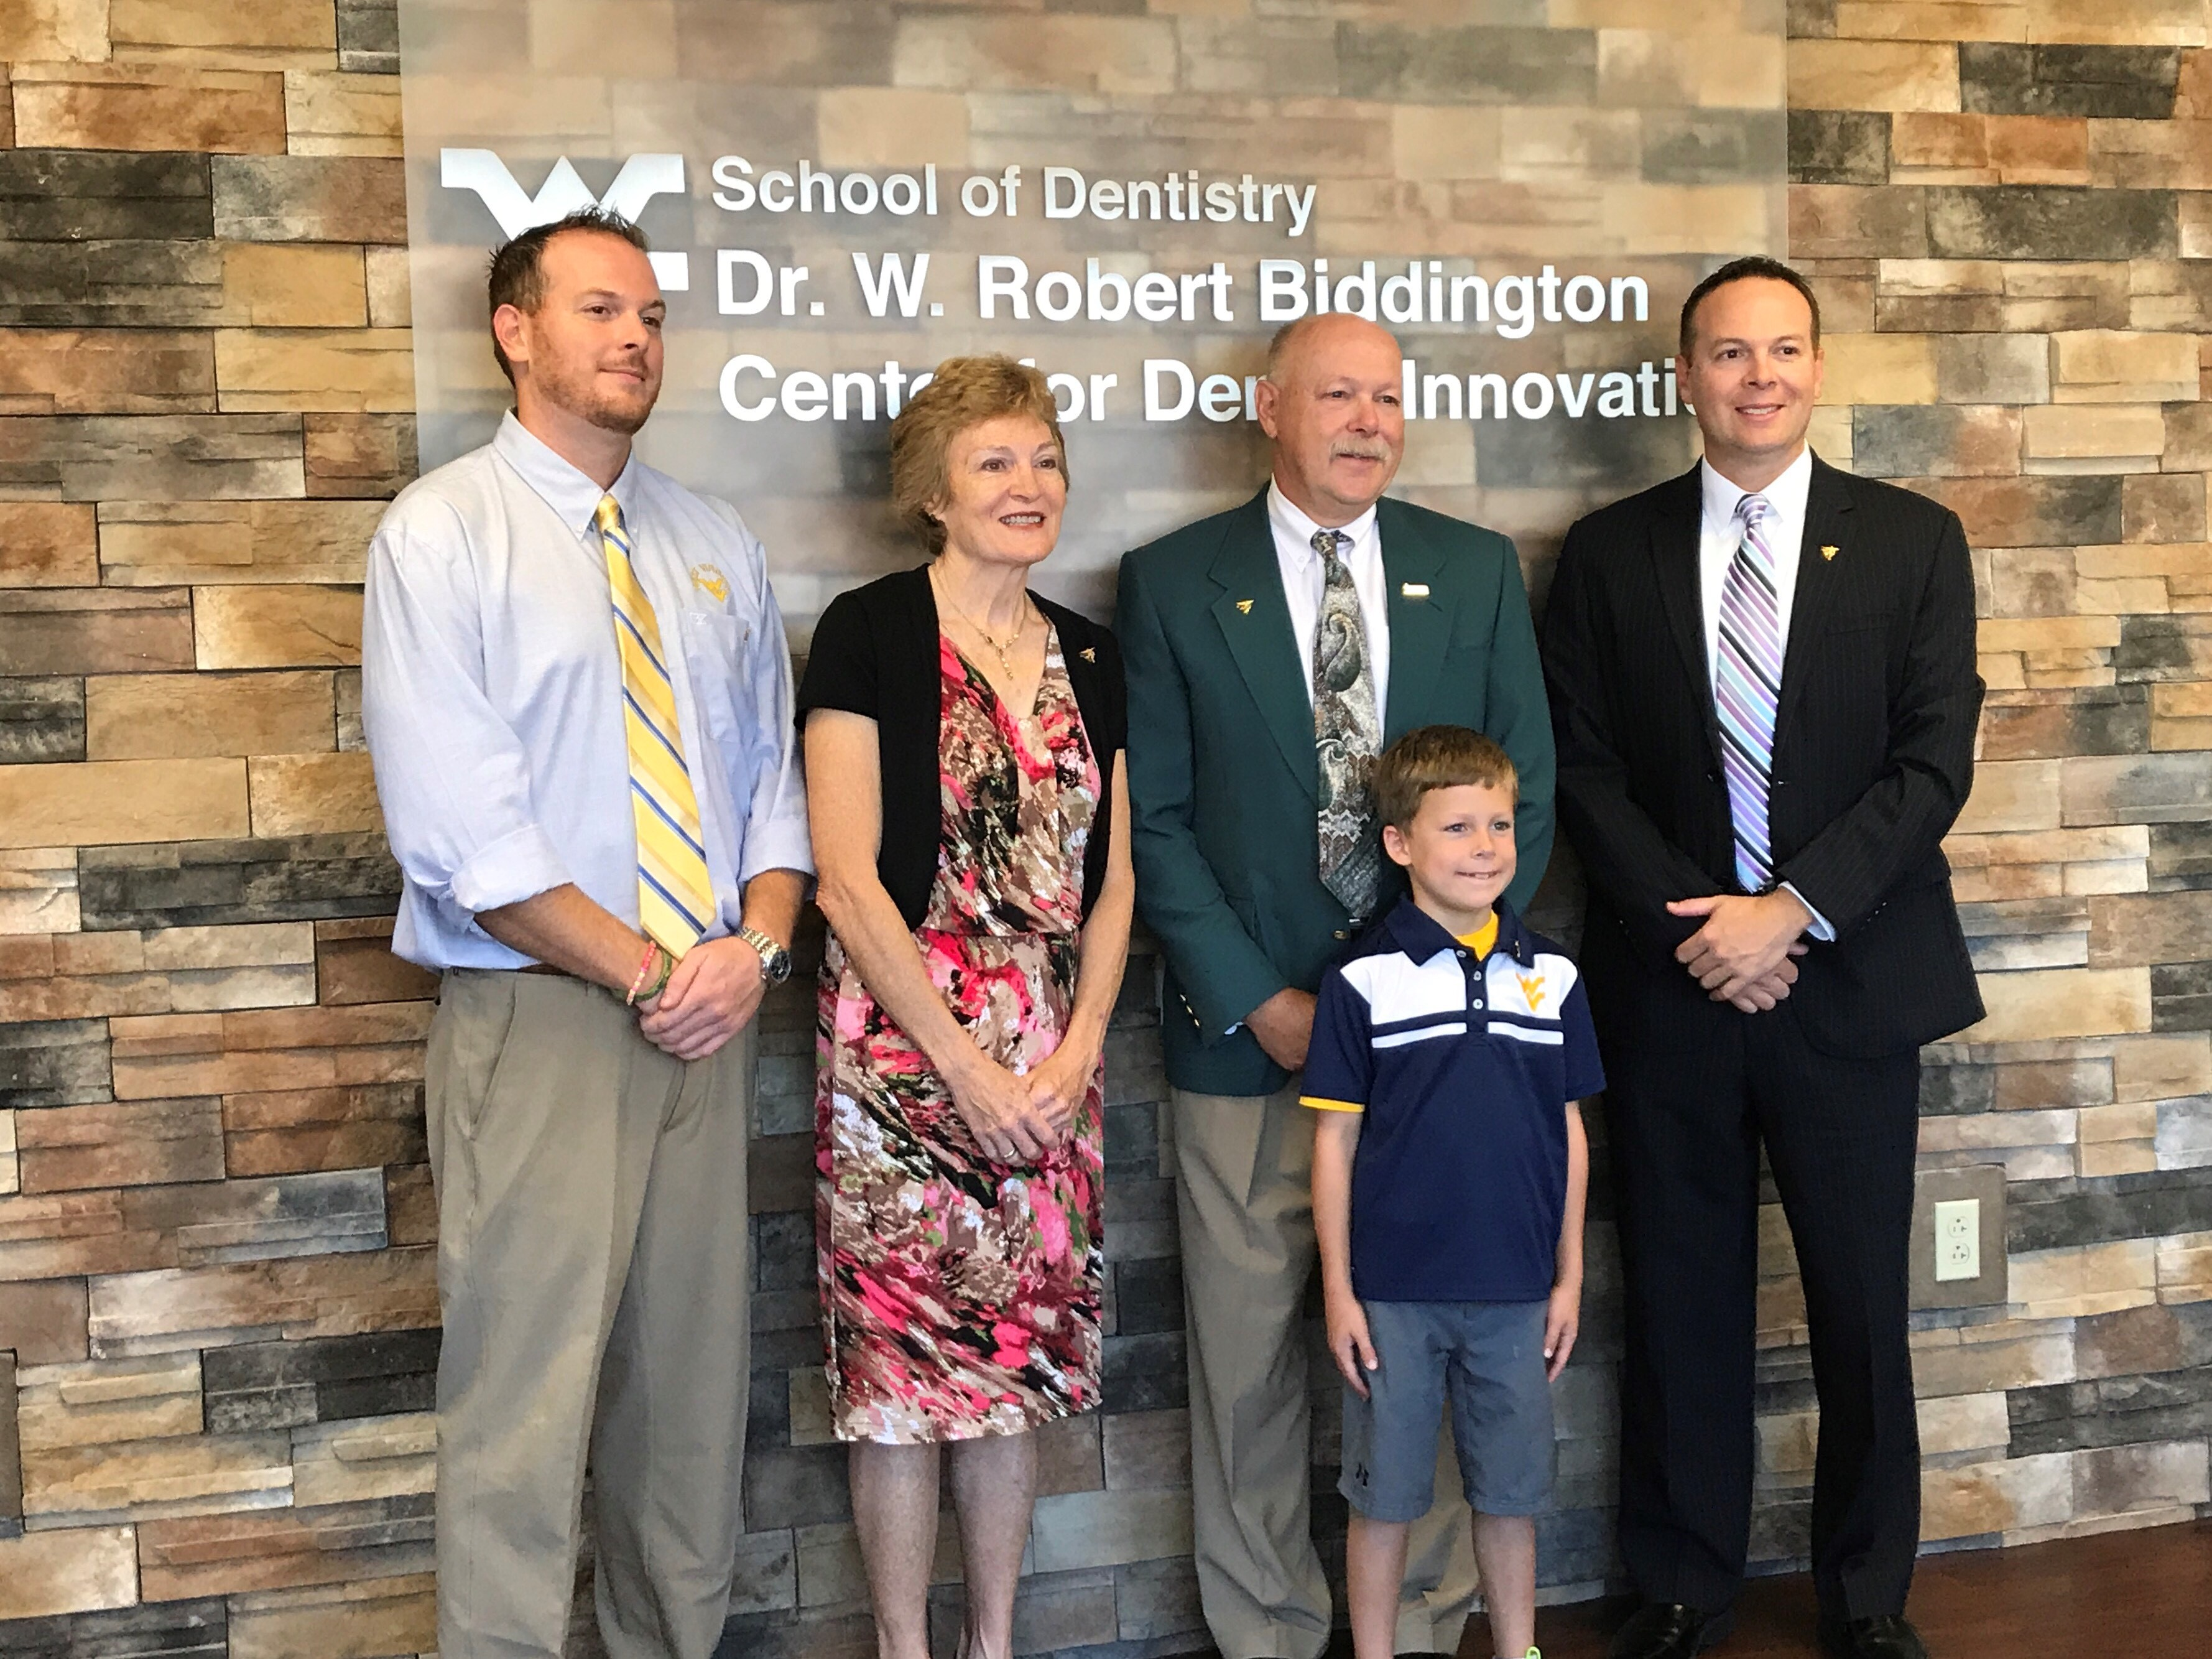 The family of Dr. W. Robert Biddington pose for a photo in front of the innovation center sign bearing the longest serving dean's name.